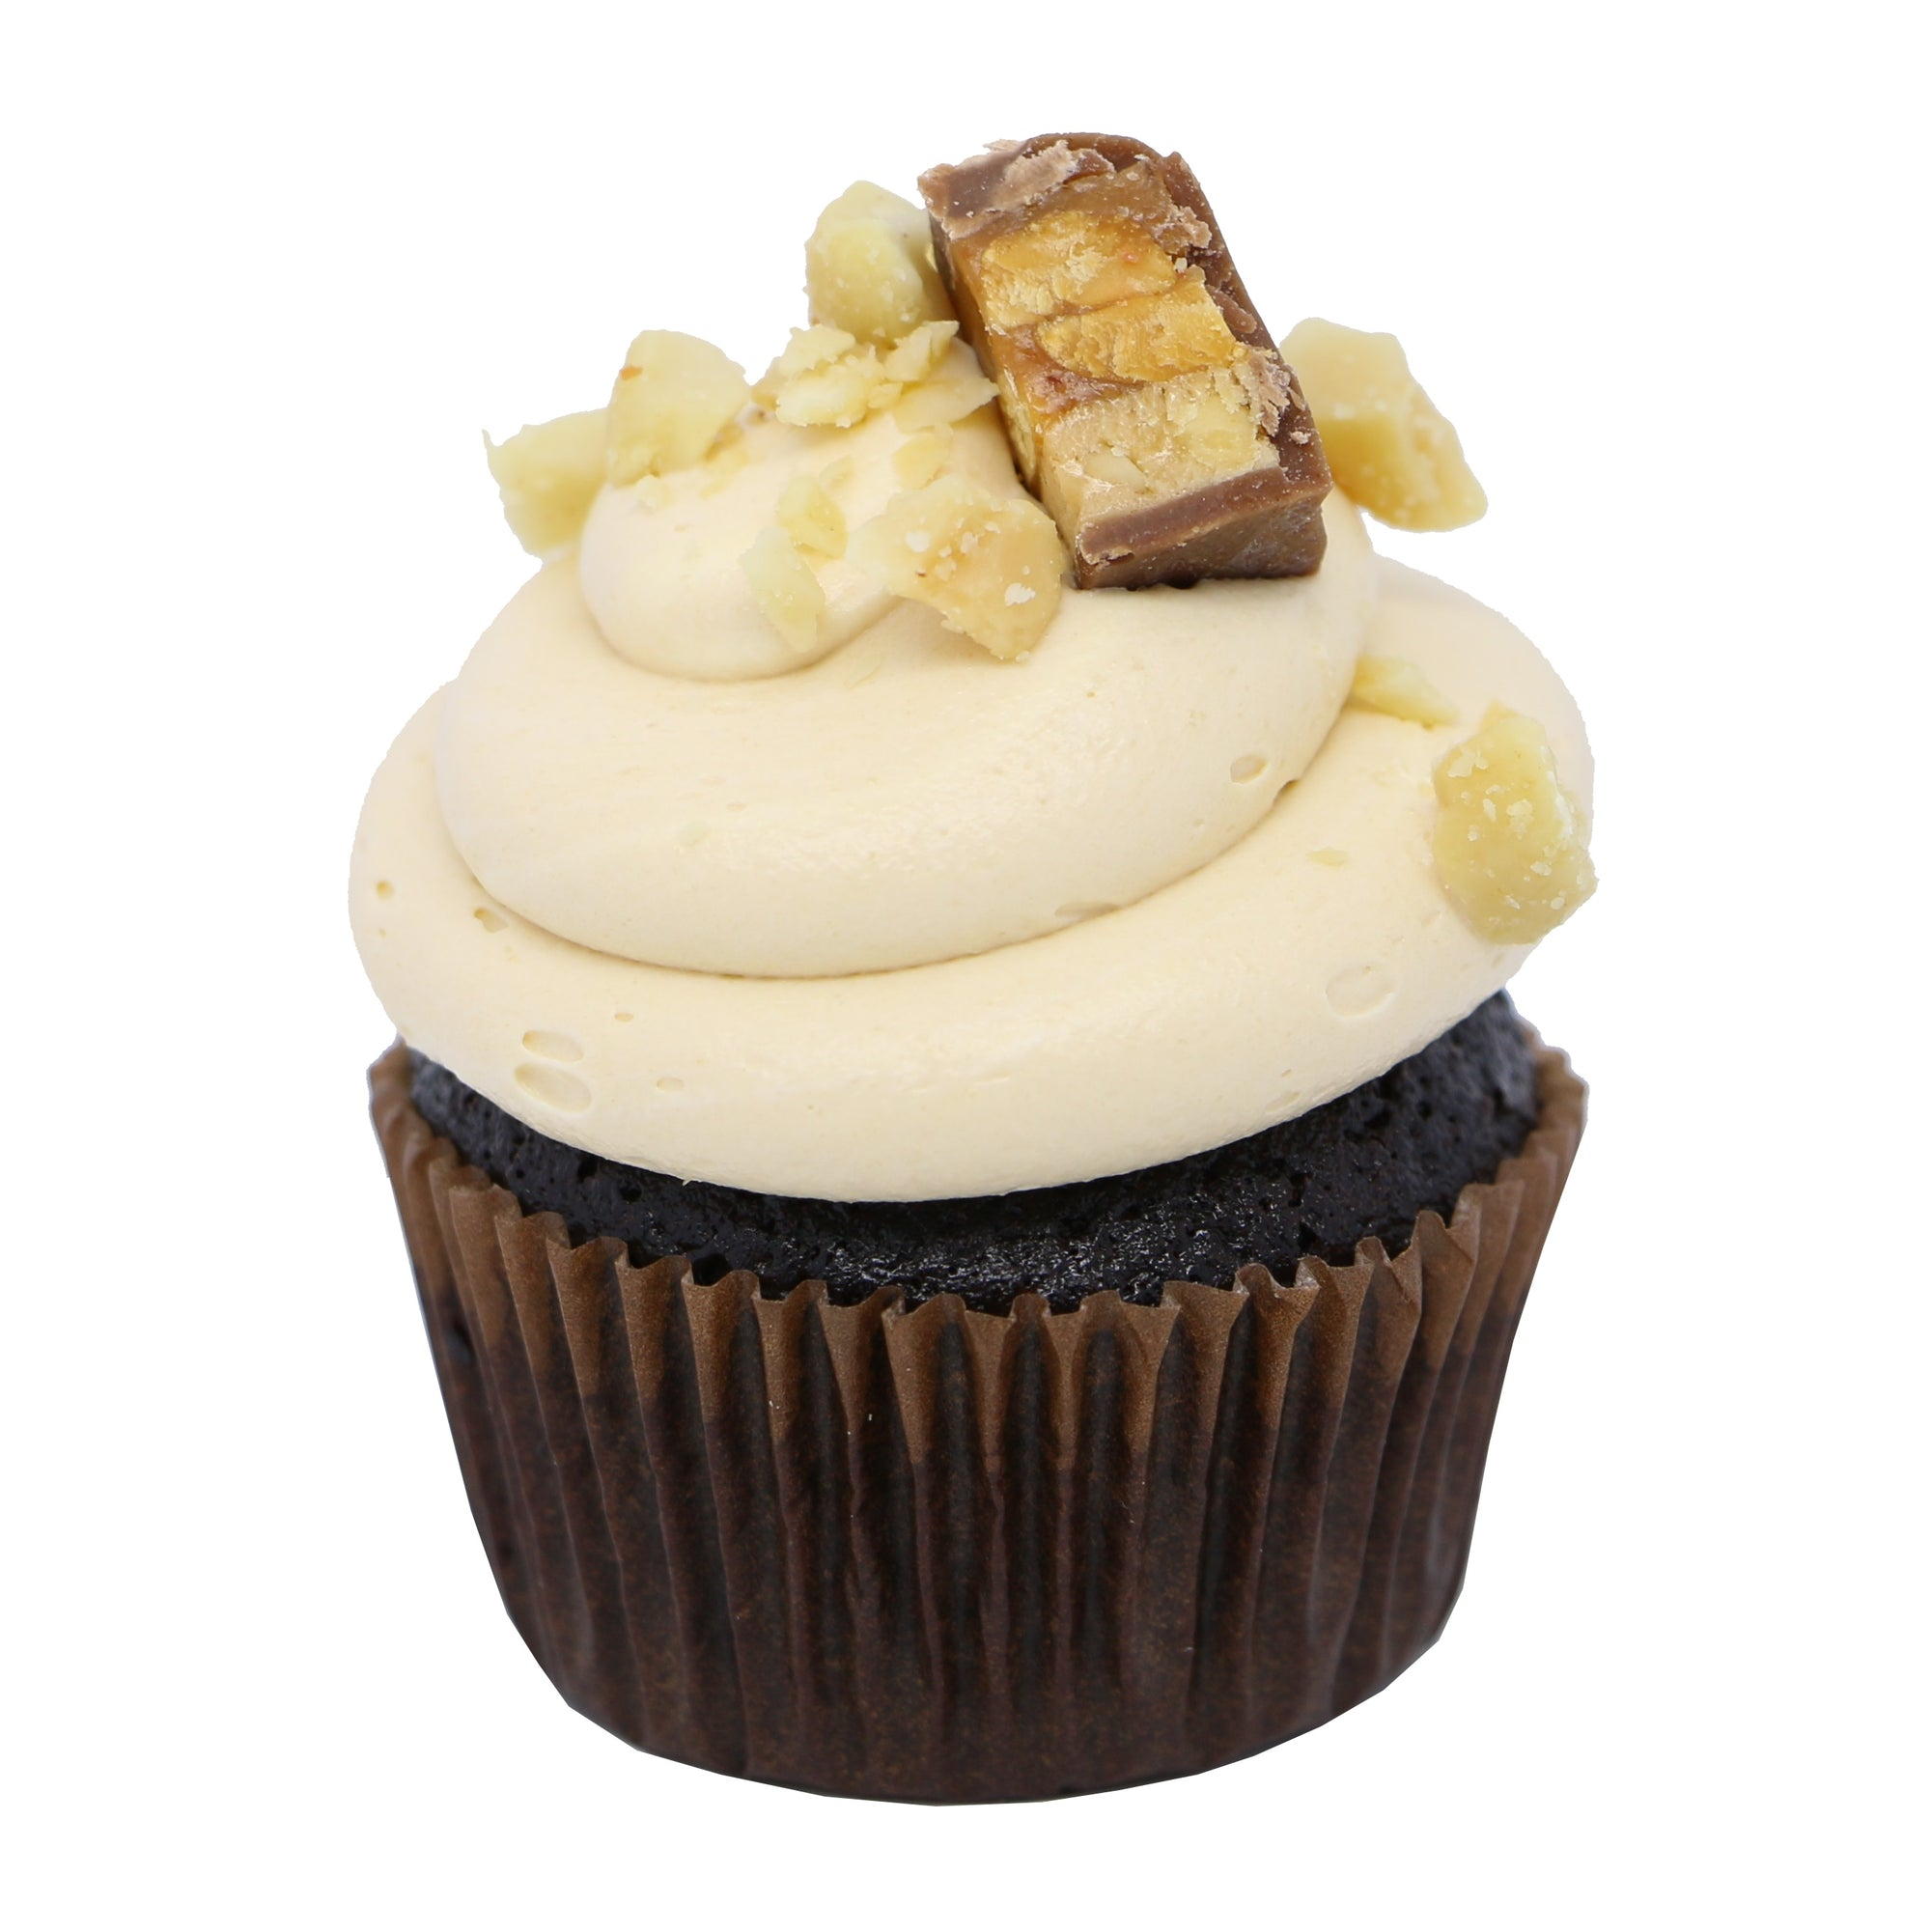 Mini Cupcake - Snickers - Treats2eat - Wedding & Birthday Party Dessert Catering Near Me